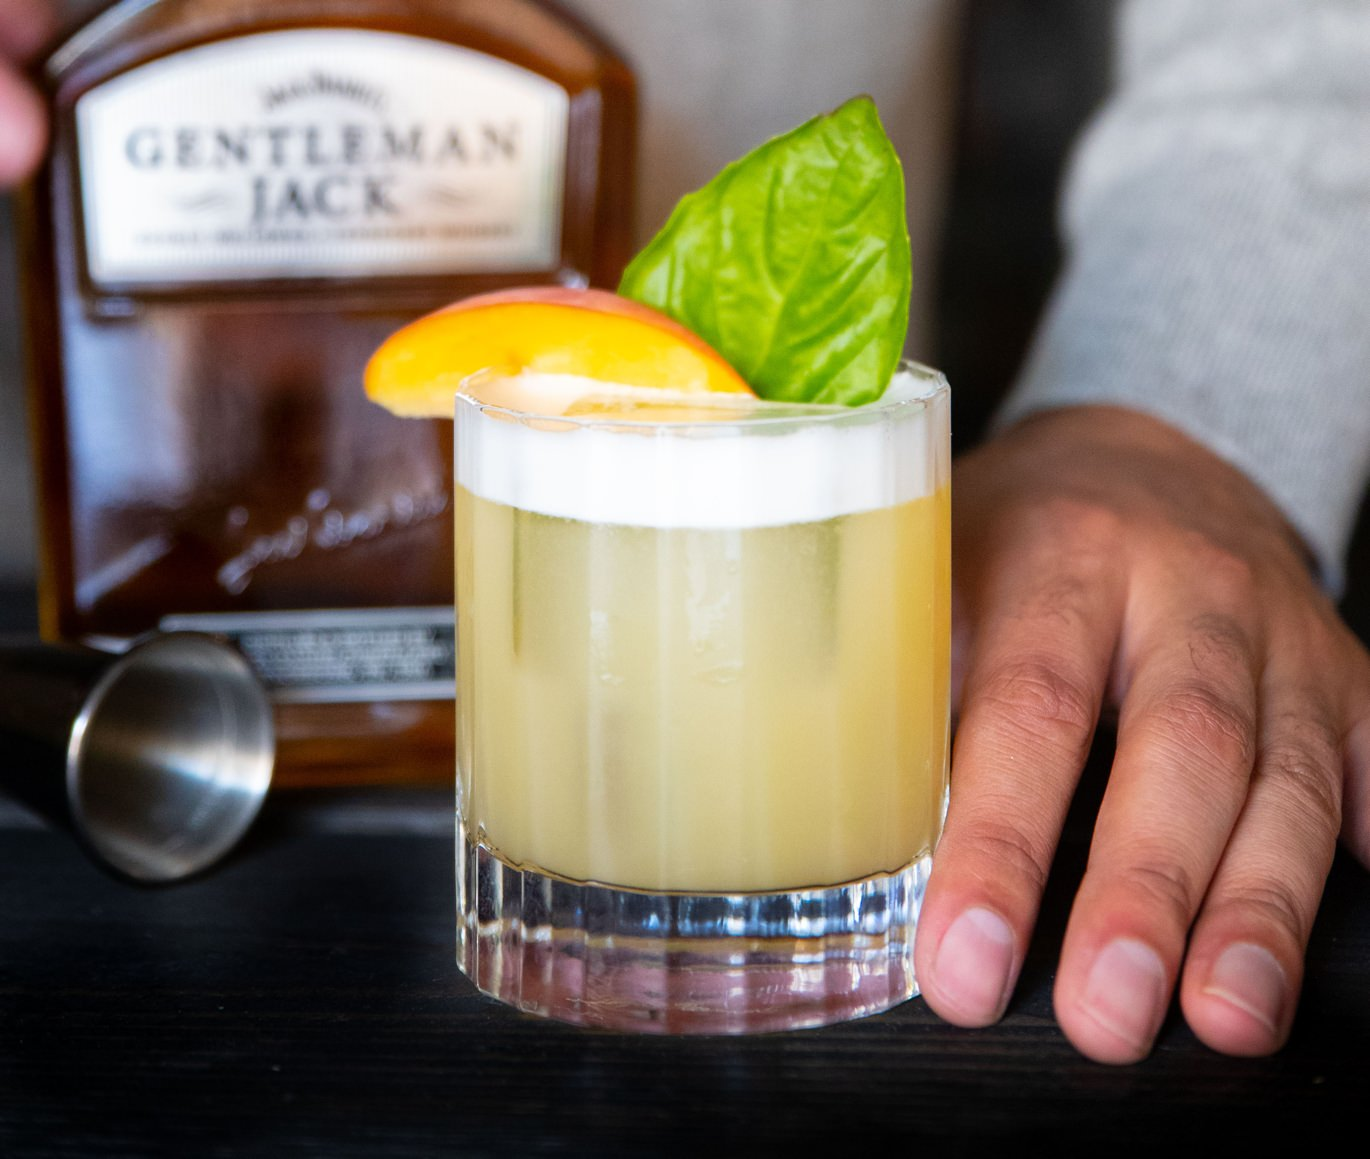 The Peach Basil Whiskey Sour cocktail recipe